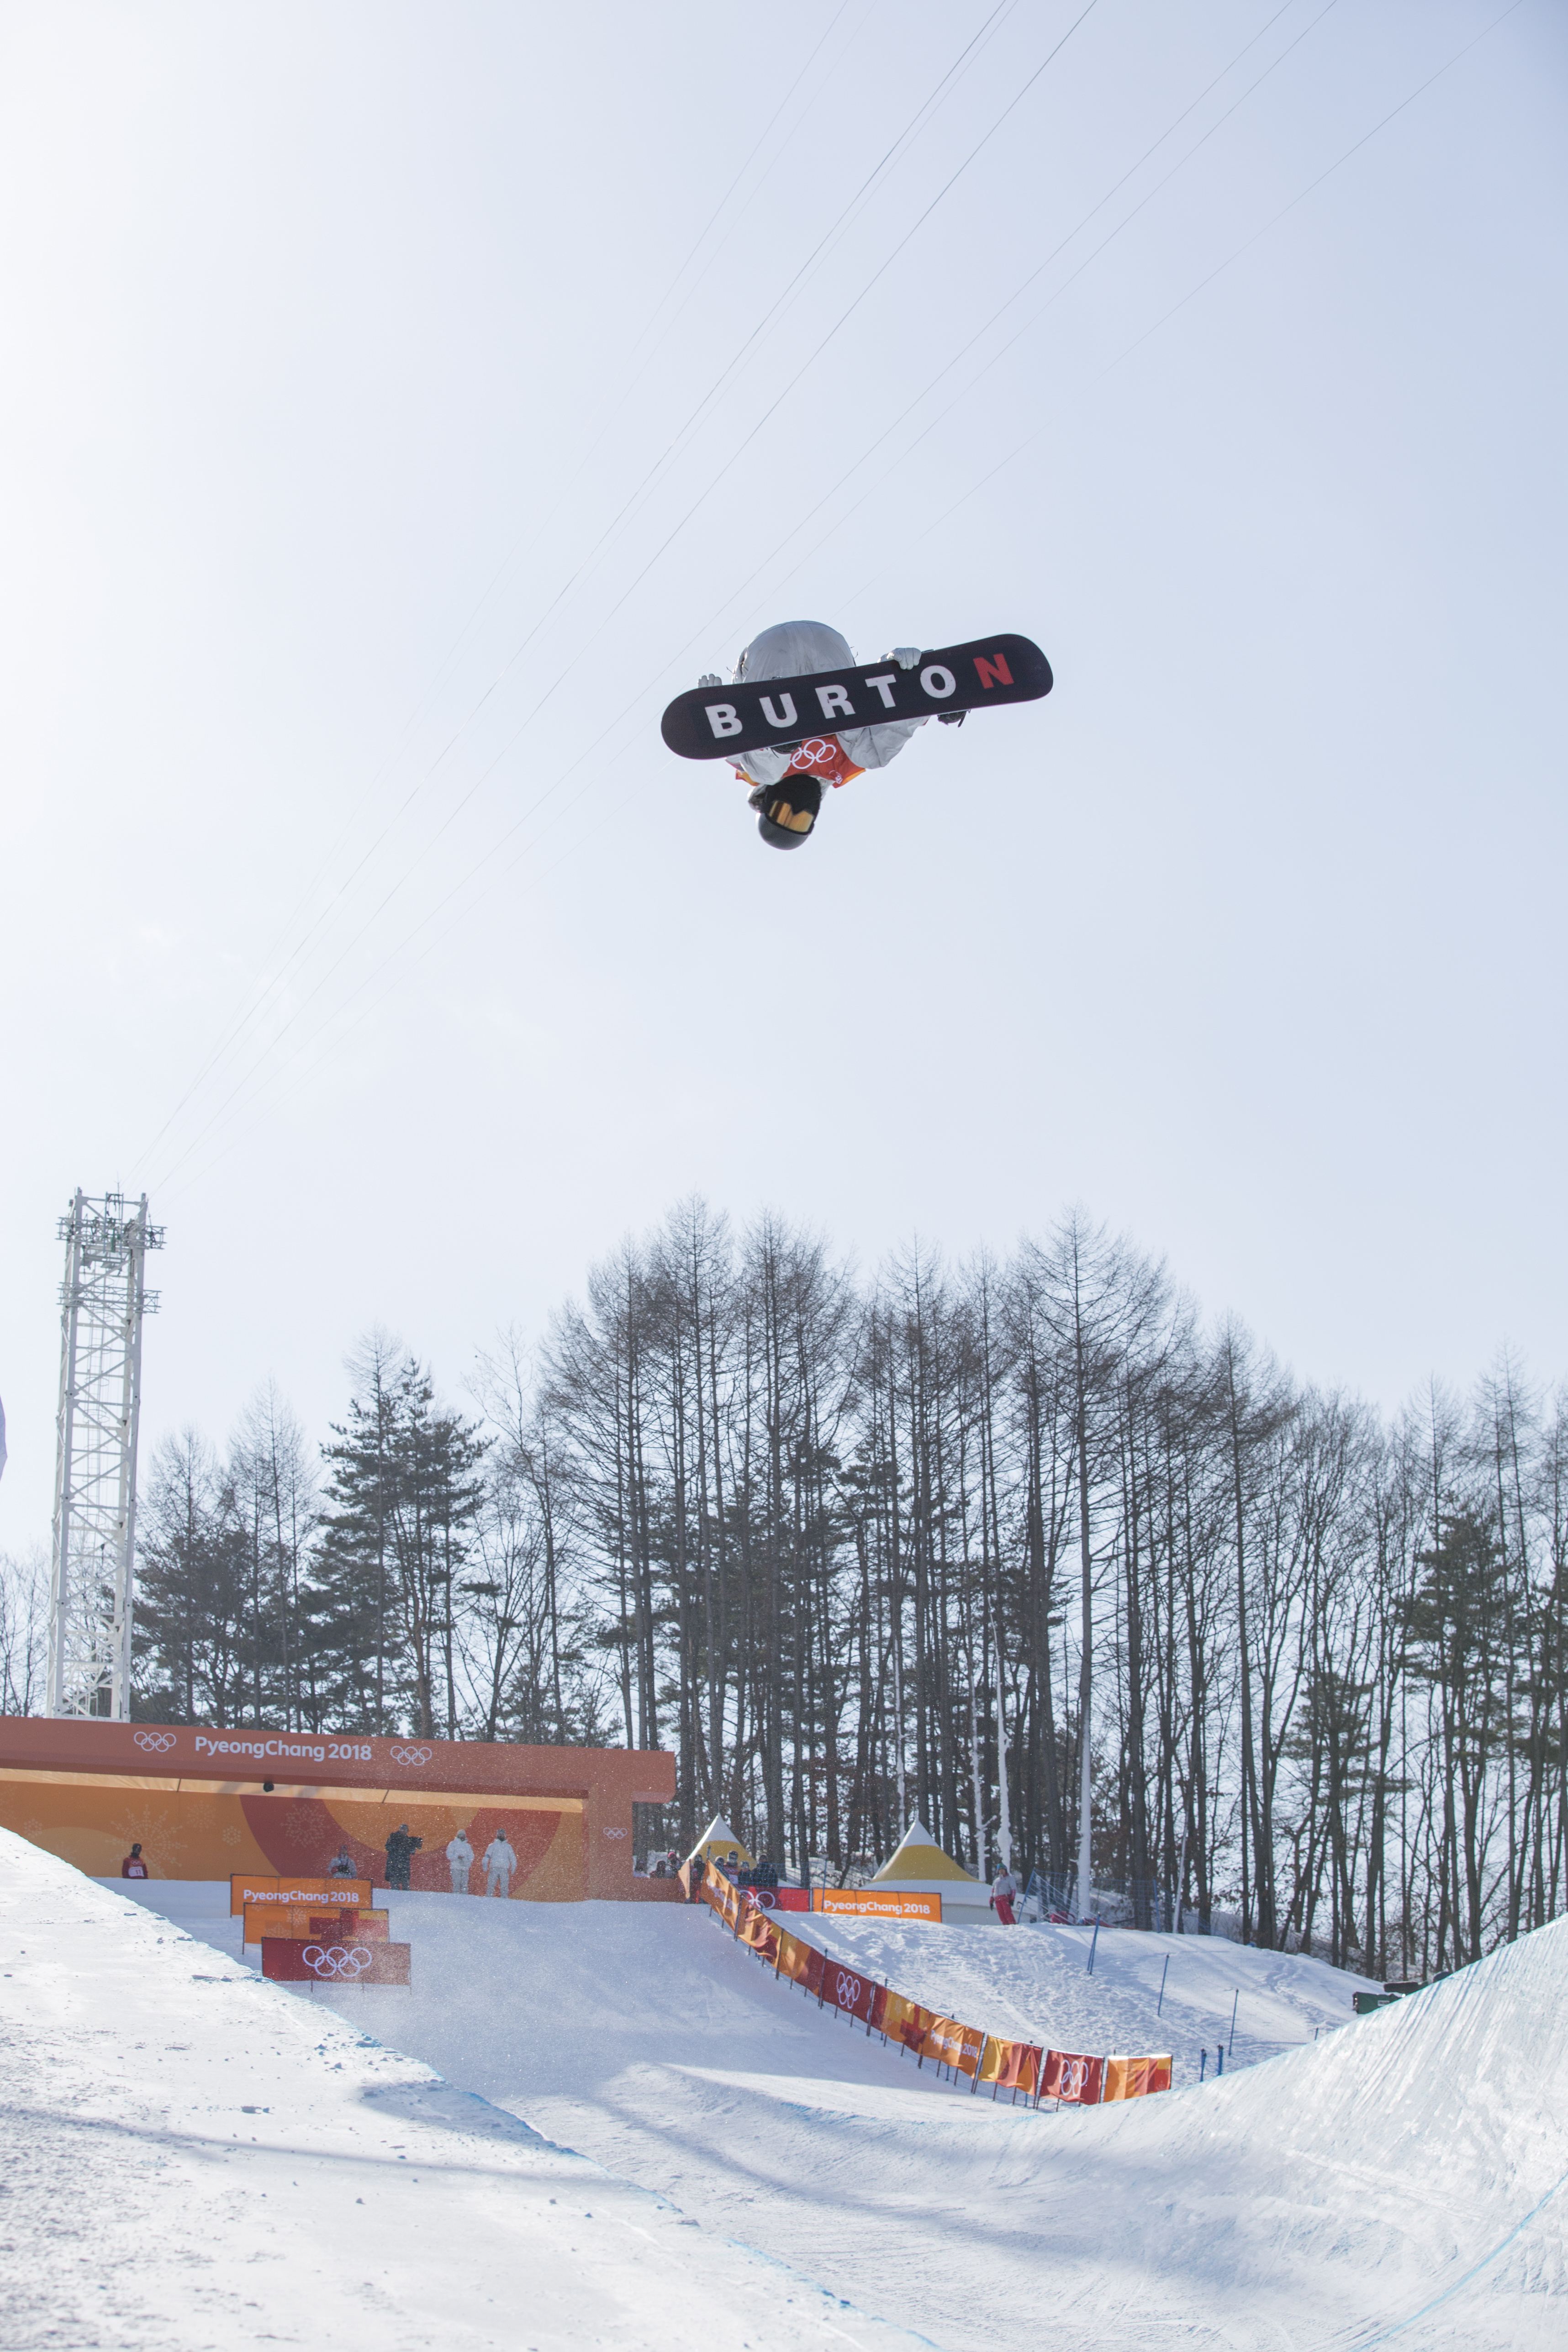 Pyeongchang 2018 Winter Olympics Mens Freestyle Snowboarding Halfpipe Qualifications